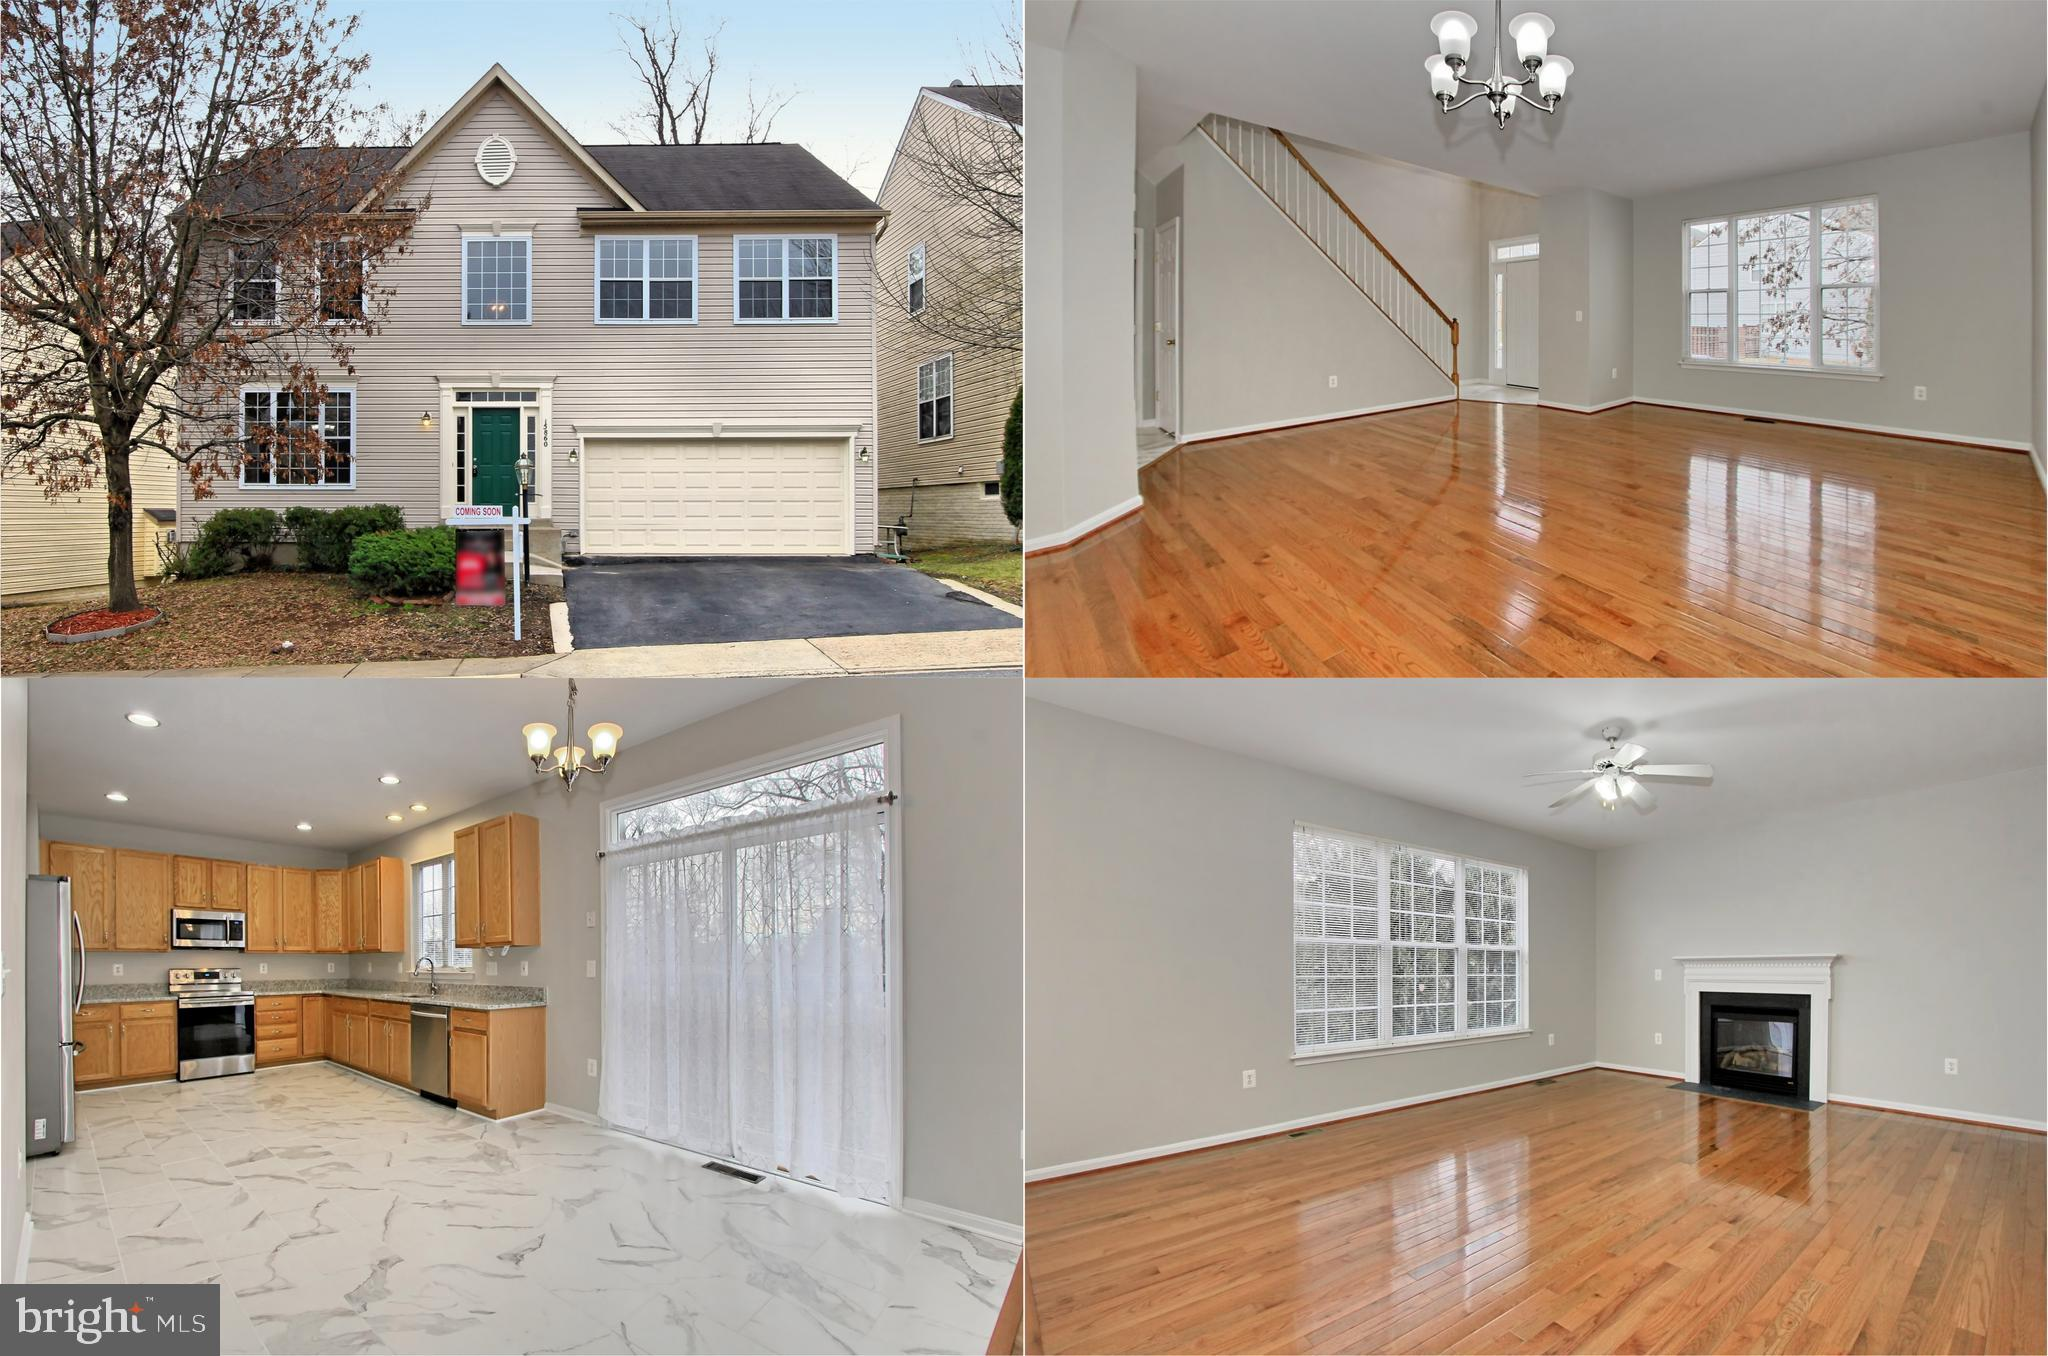 Beautifully renovated 5 bedroom, 3.5 bath home backing to trees in excellent location! Freshly paint